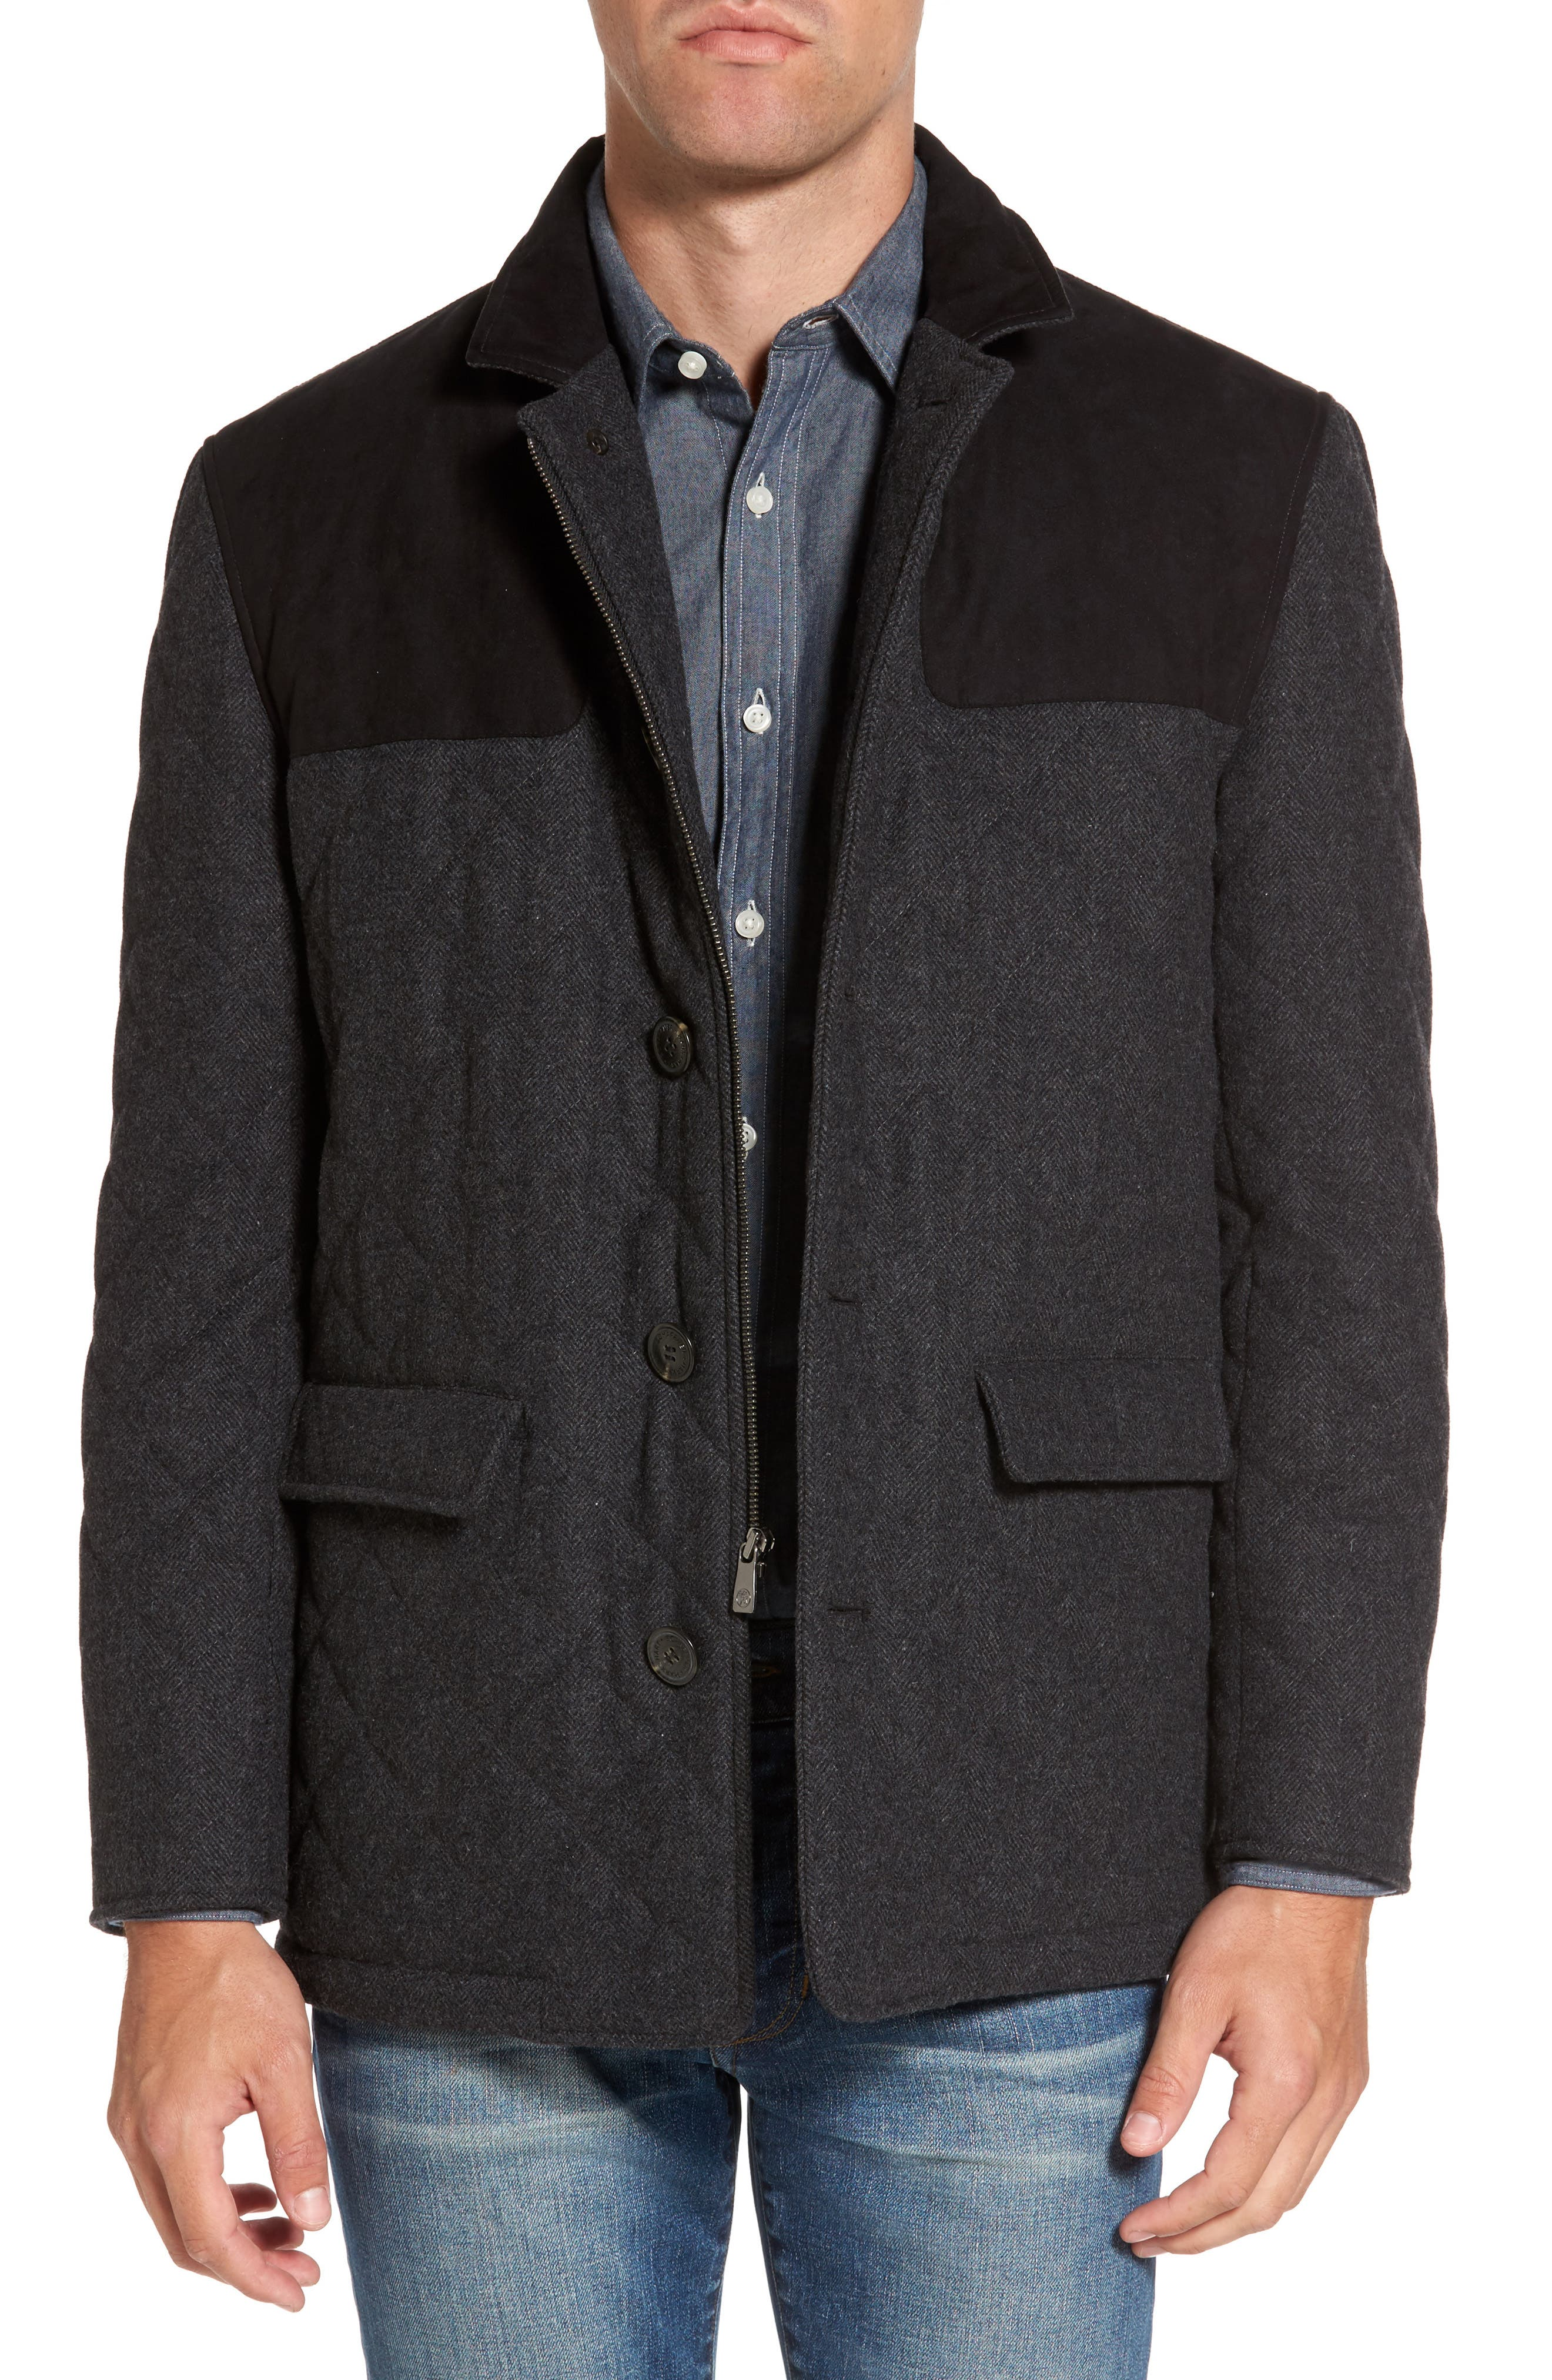 'Shooter' Wool Blend Quilted Jacket,                             Main thumbnail 1, color,                             024